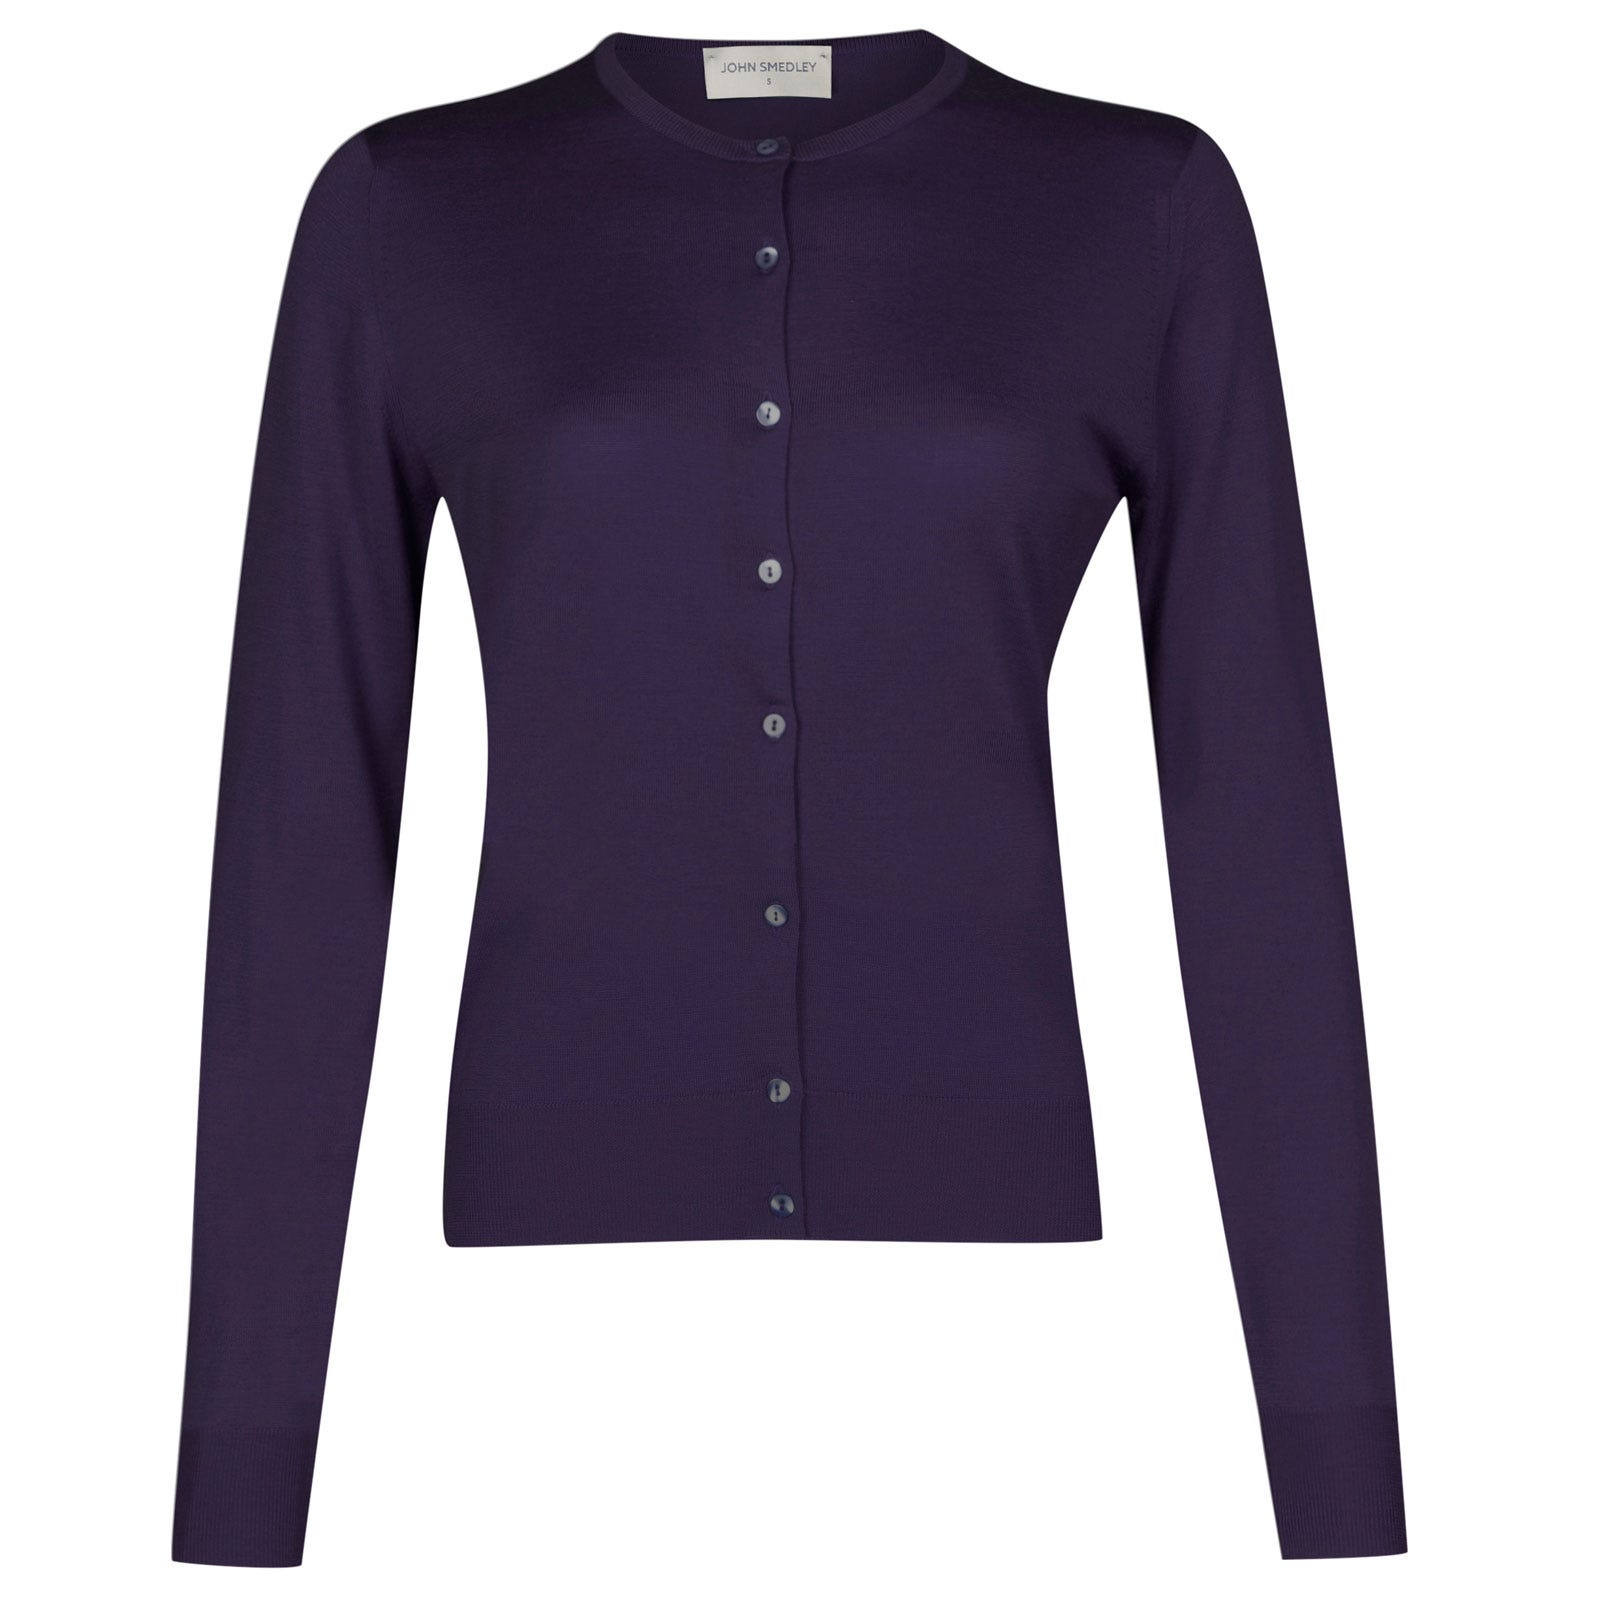 John Smedley pansy Merino Wool Cardigan in Elderberry Purple-M